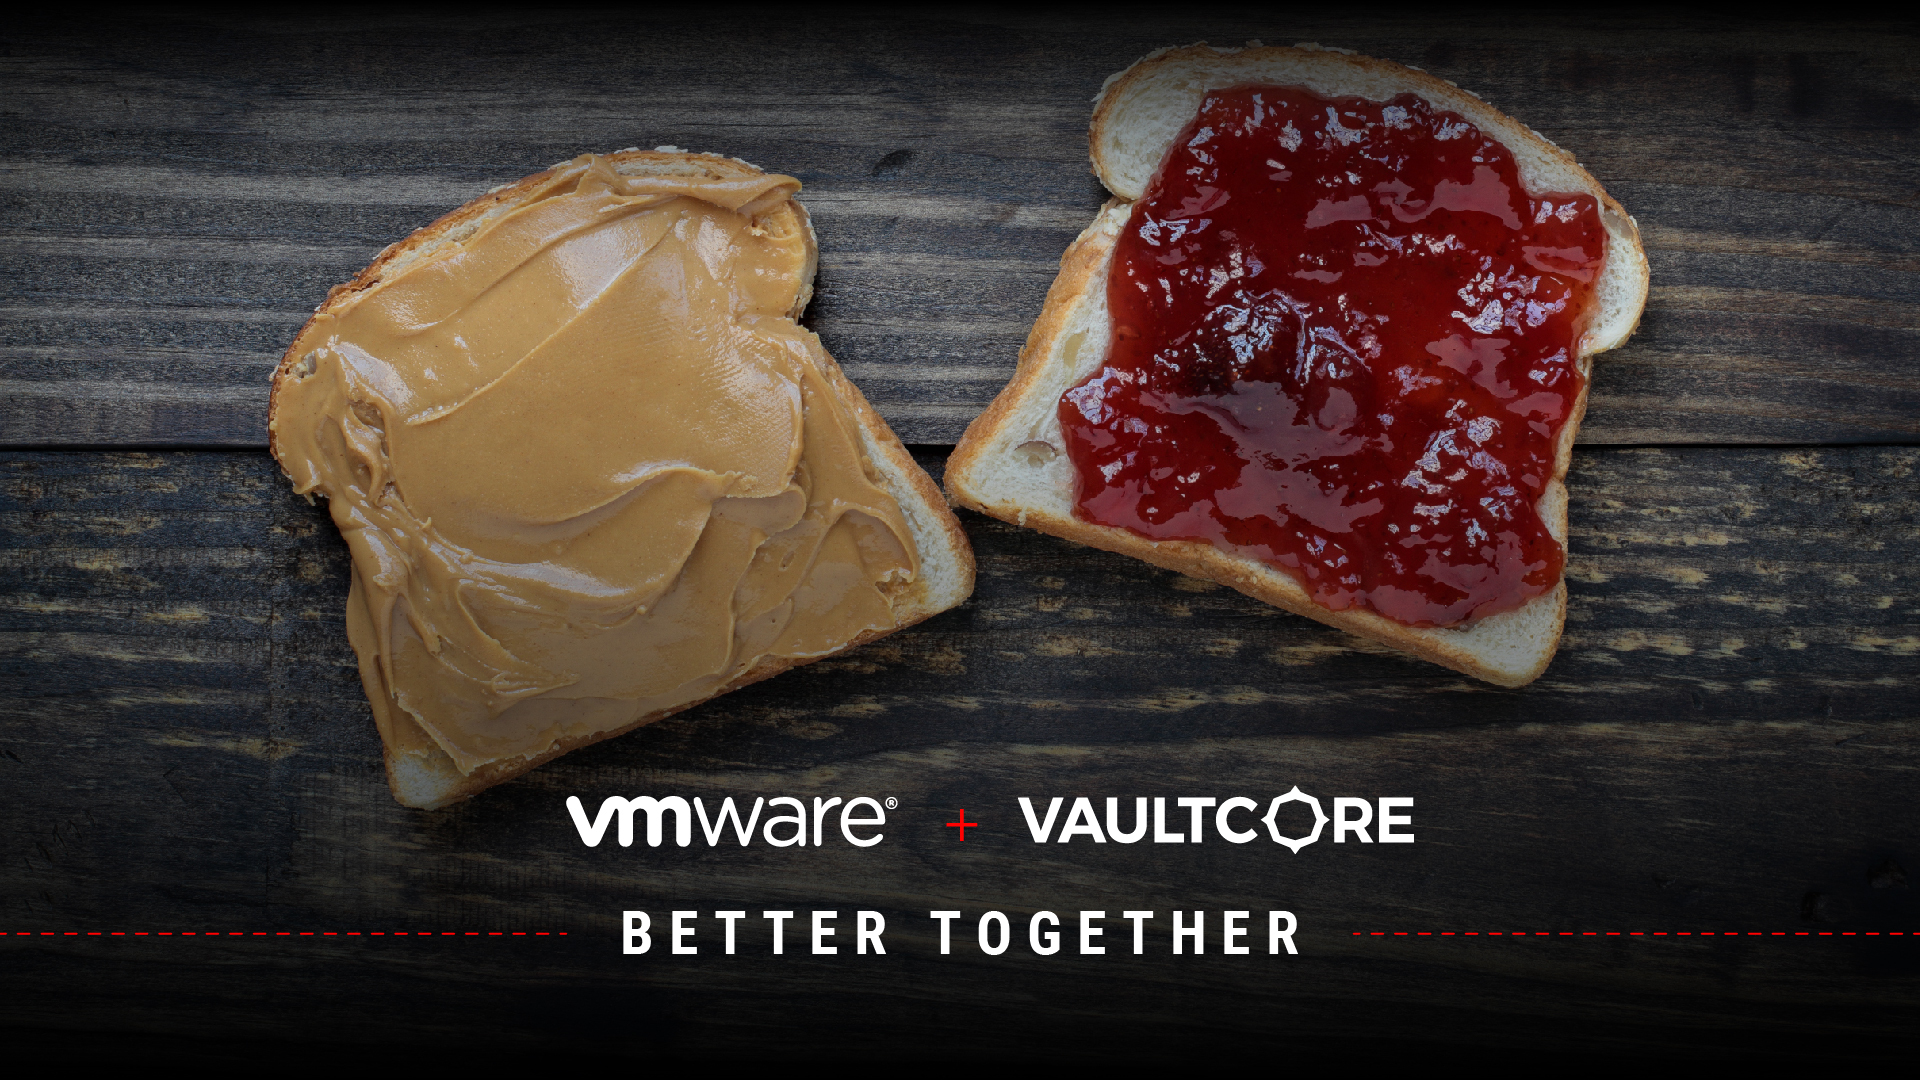 Some Things Just Go Better Together, Like VMware and VaultCore